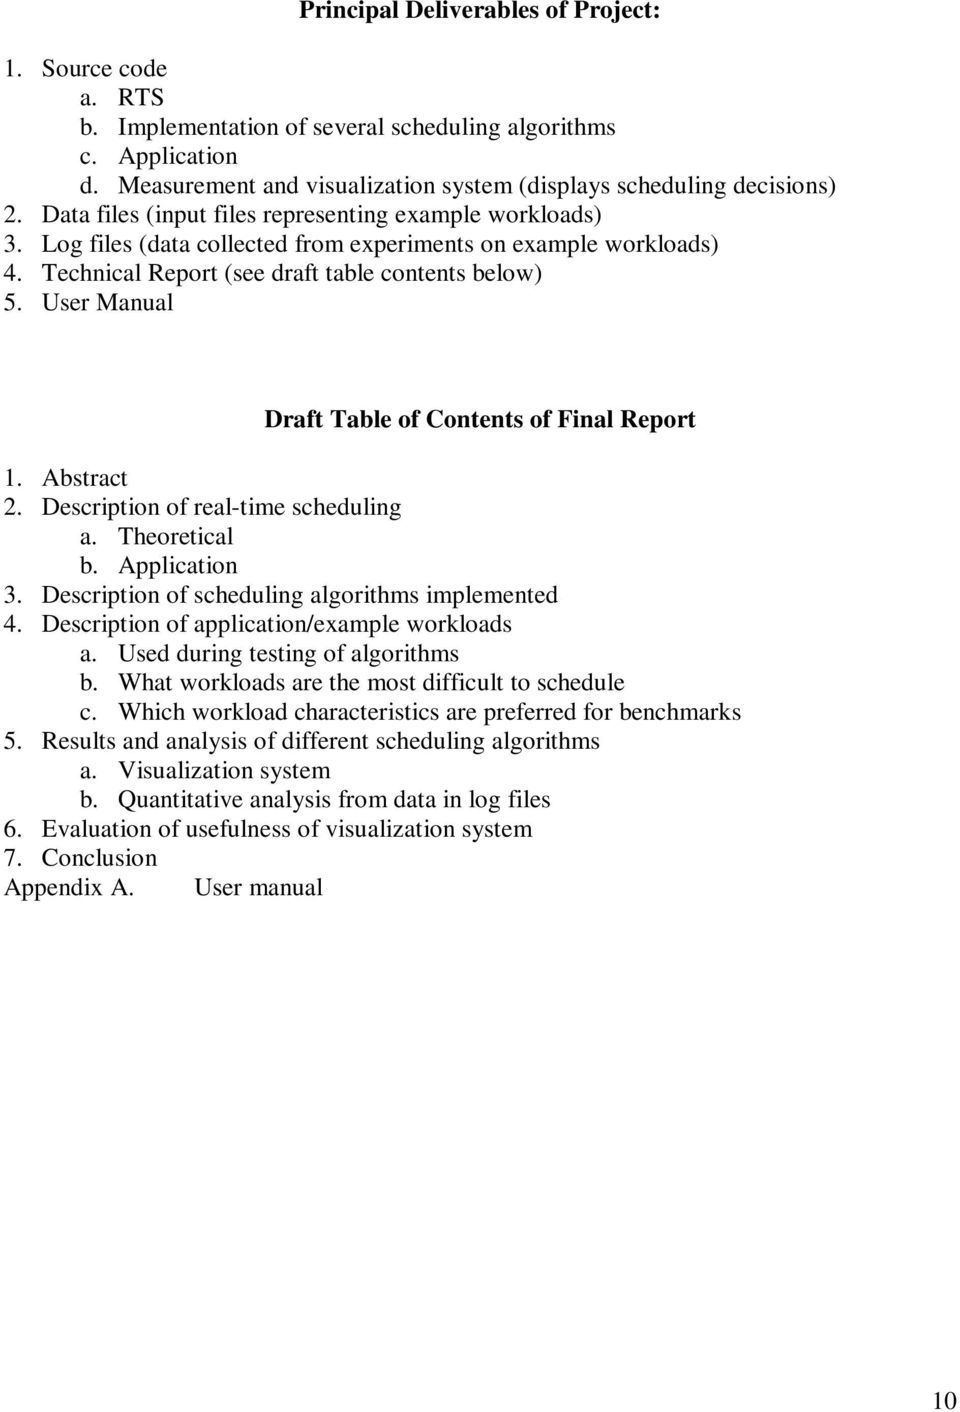 User Manual Draft Table of Contents of Final Report 1. Abstract 2. Description of real-time scheduling a. Theoretical b. Application 3. Description of scheduling algorithms implemented 4.